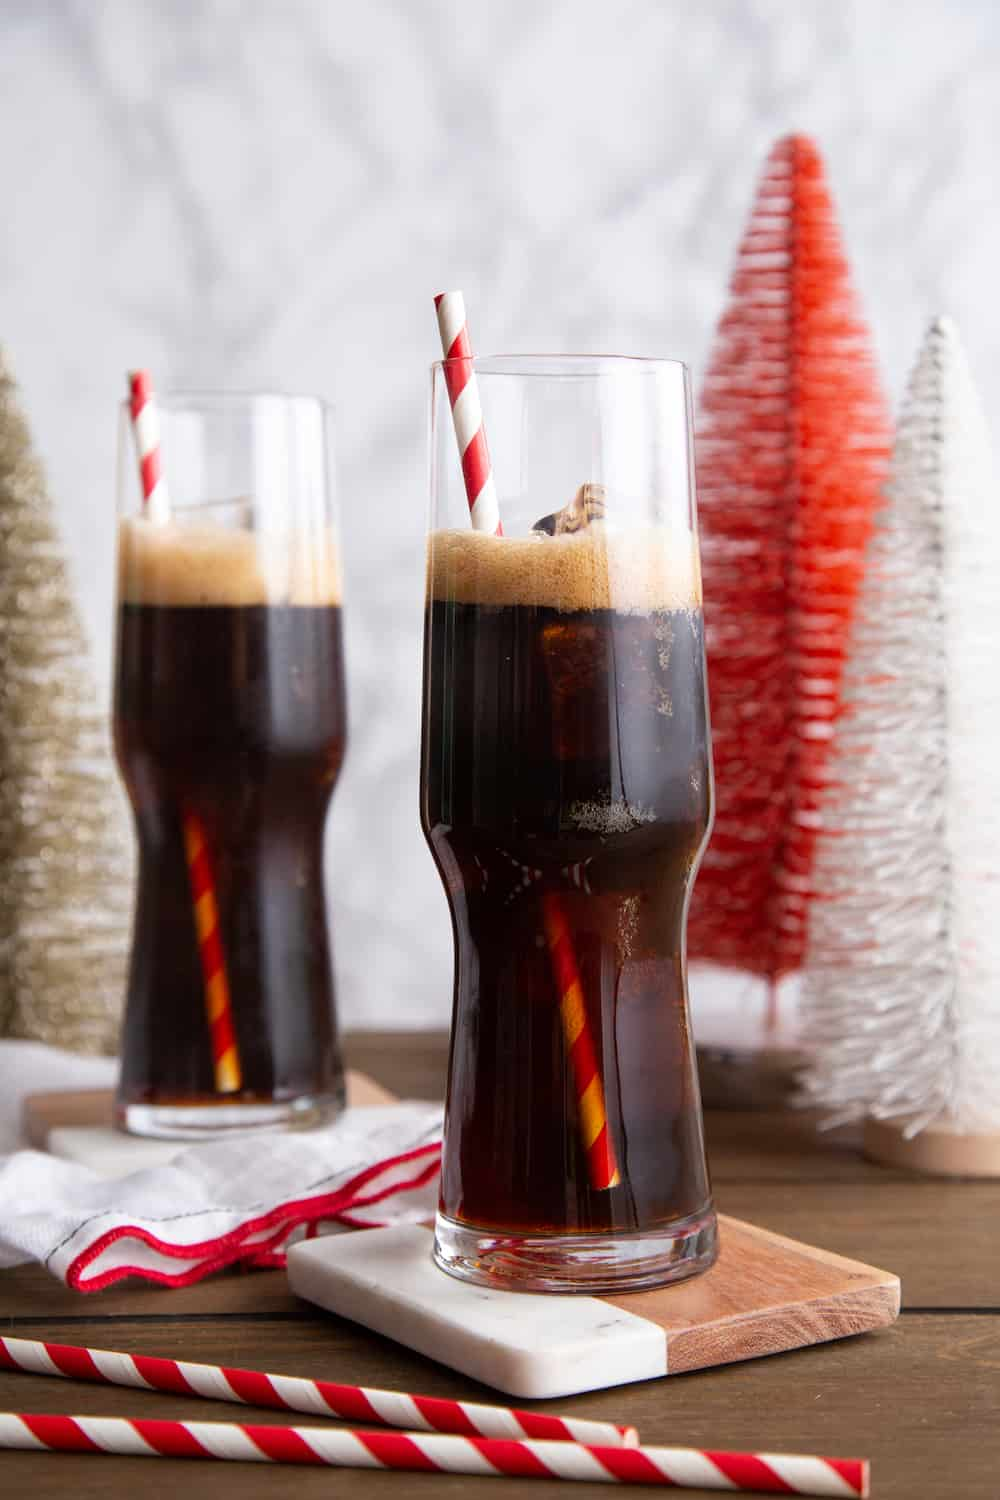 The Good Cheer: A Porter Beer Cocktail for the Holidays